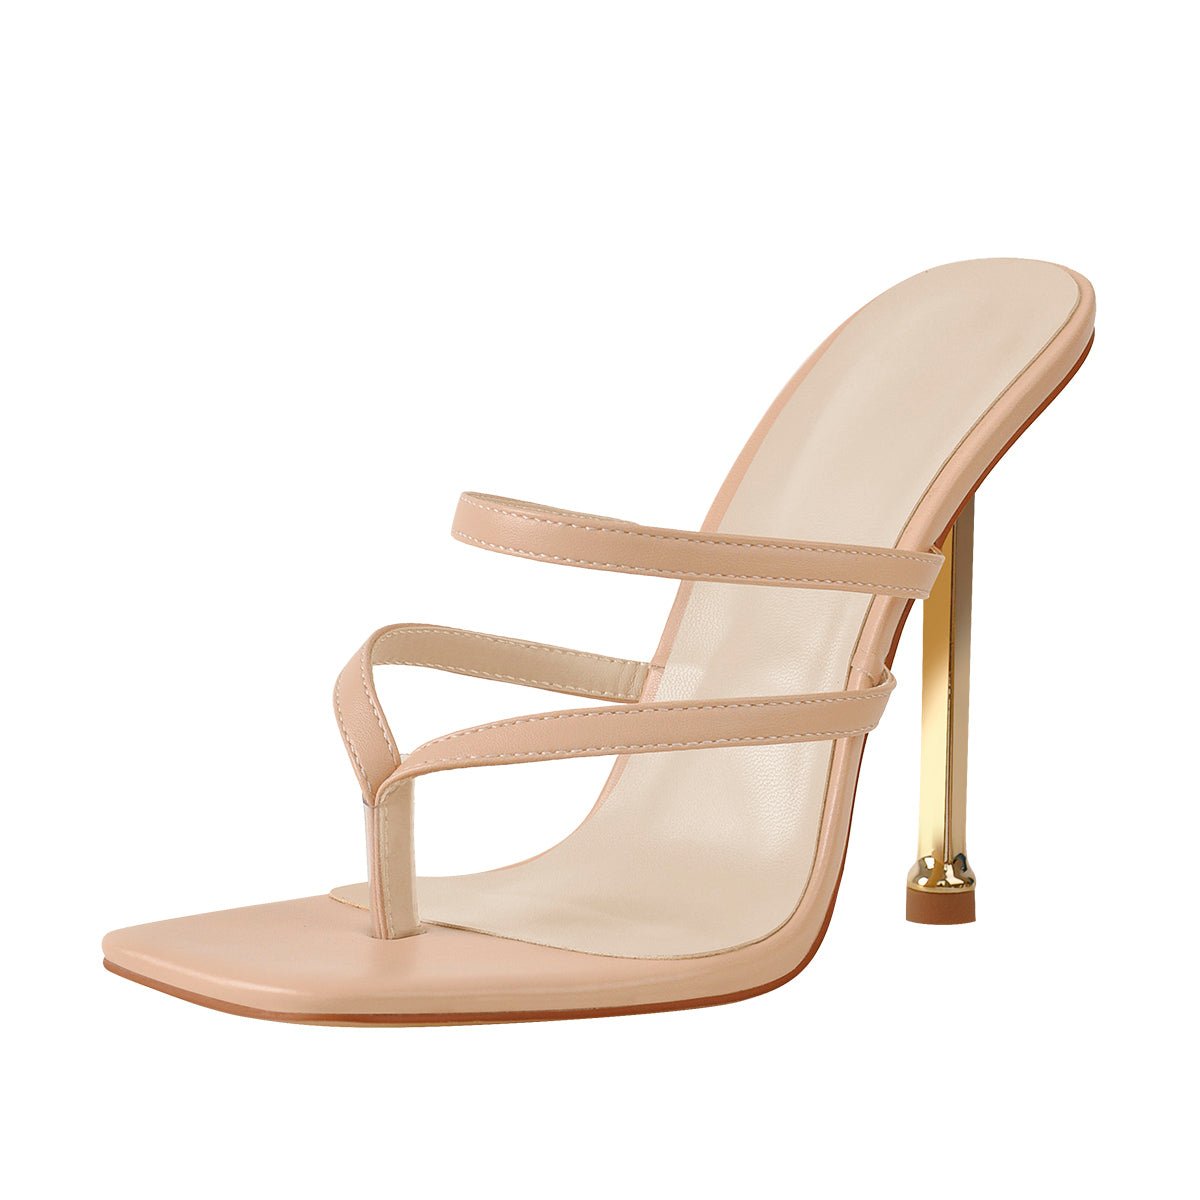 10cm Square Toe Matte Patent Leather Baby Pink Strap High Metal Heels Sandals